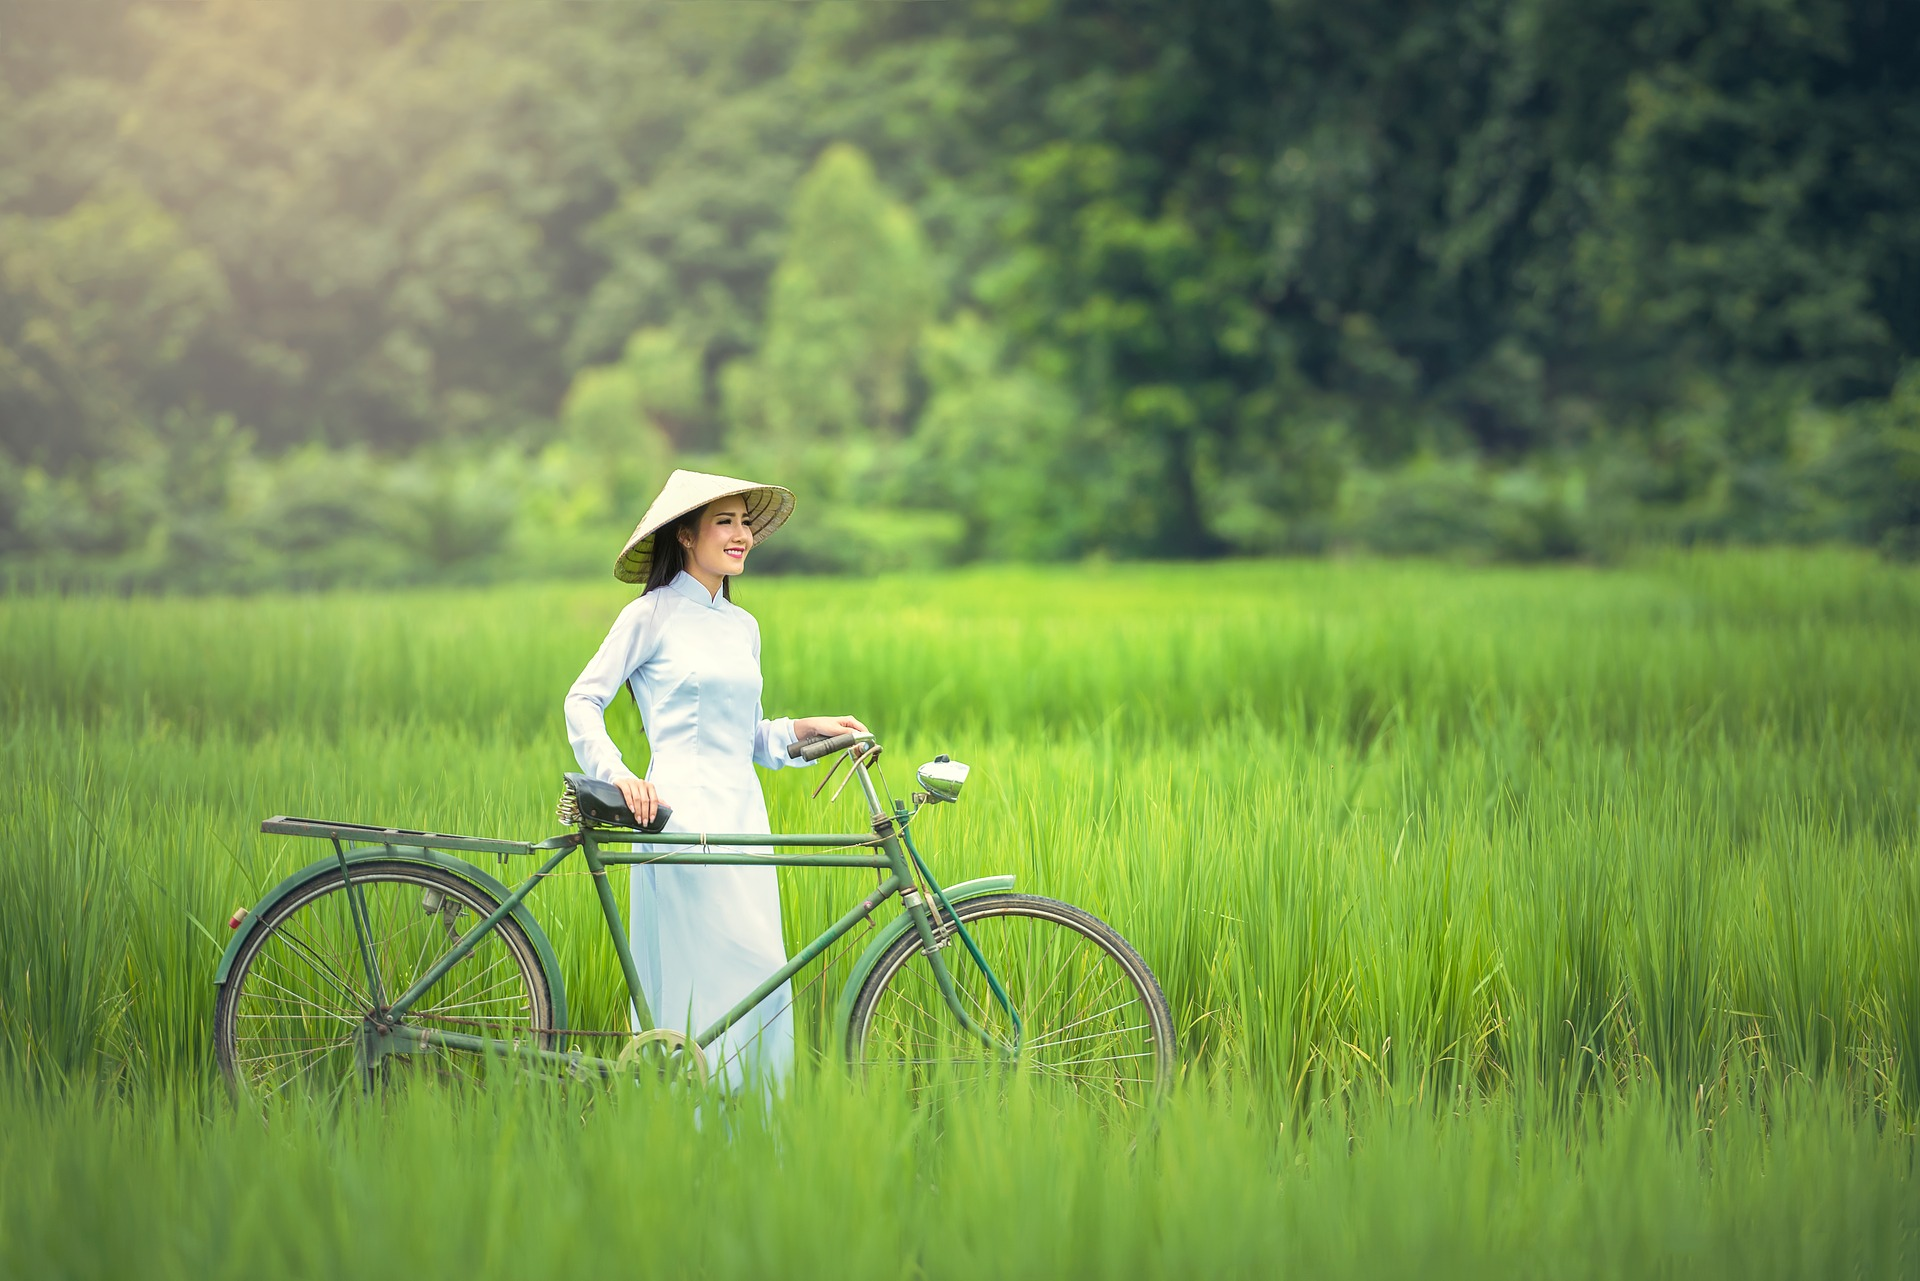 Lady with the bicycle photo